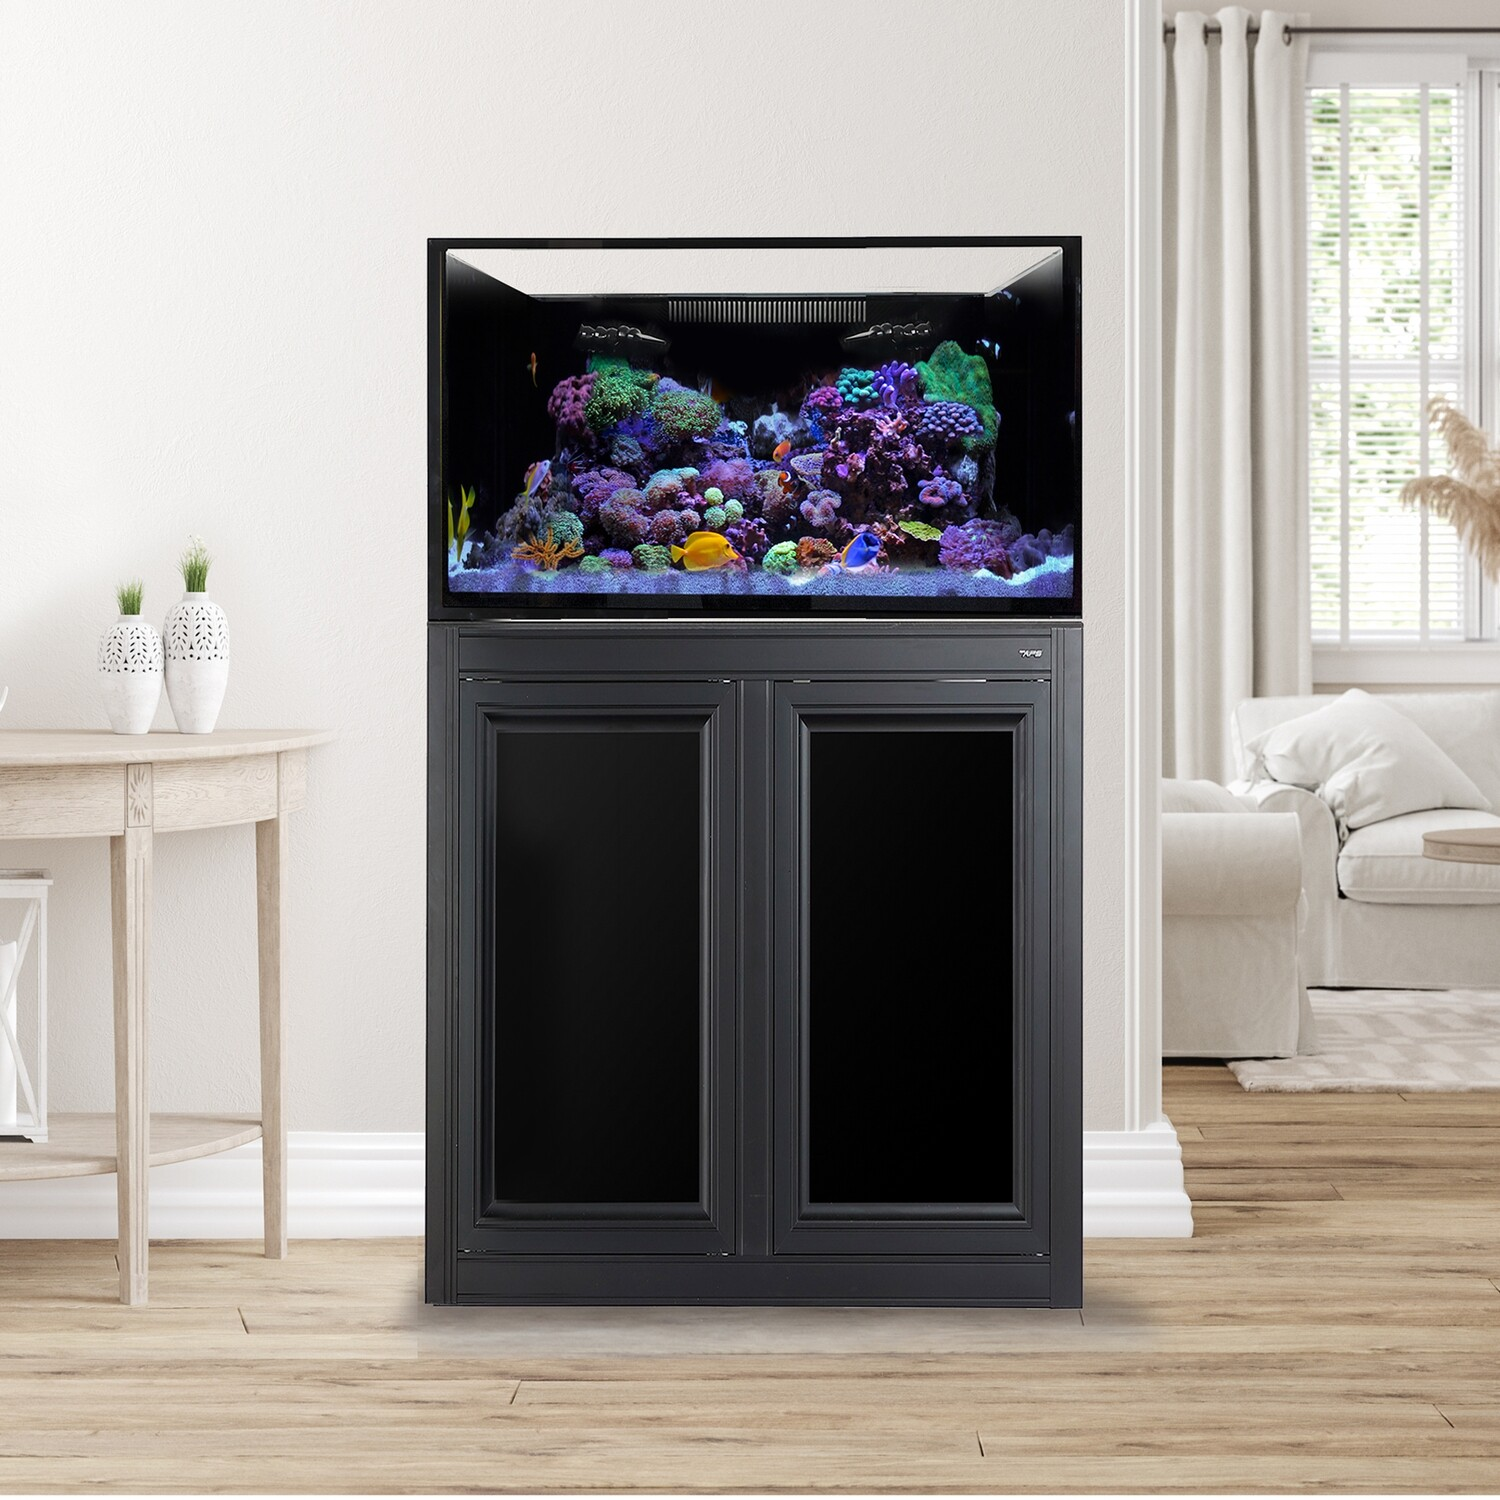 EXT 75 Aquarium w/ APS Stand - Black